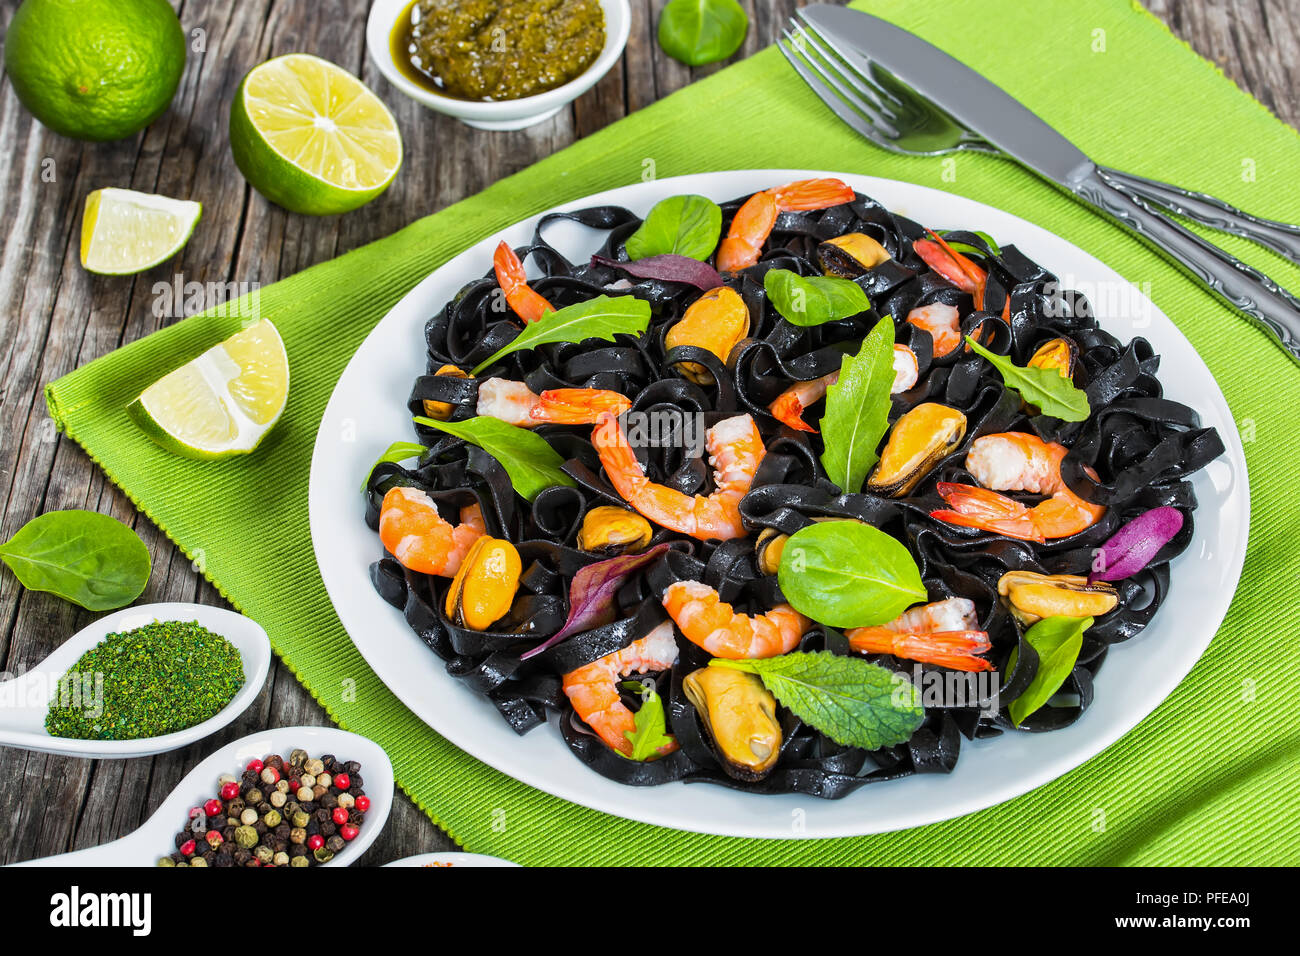 delicious black noodles salad with prawns, mussels, fresh green leaves on white dish on table mat on dark wooden table with lime and spices on backgro - Stock Image